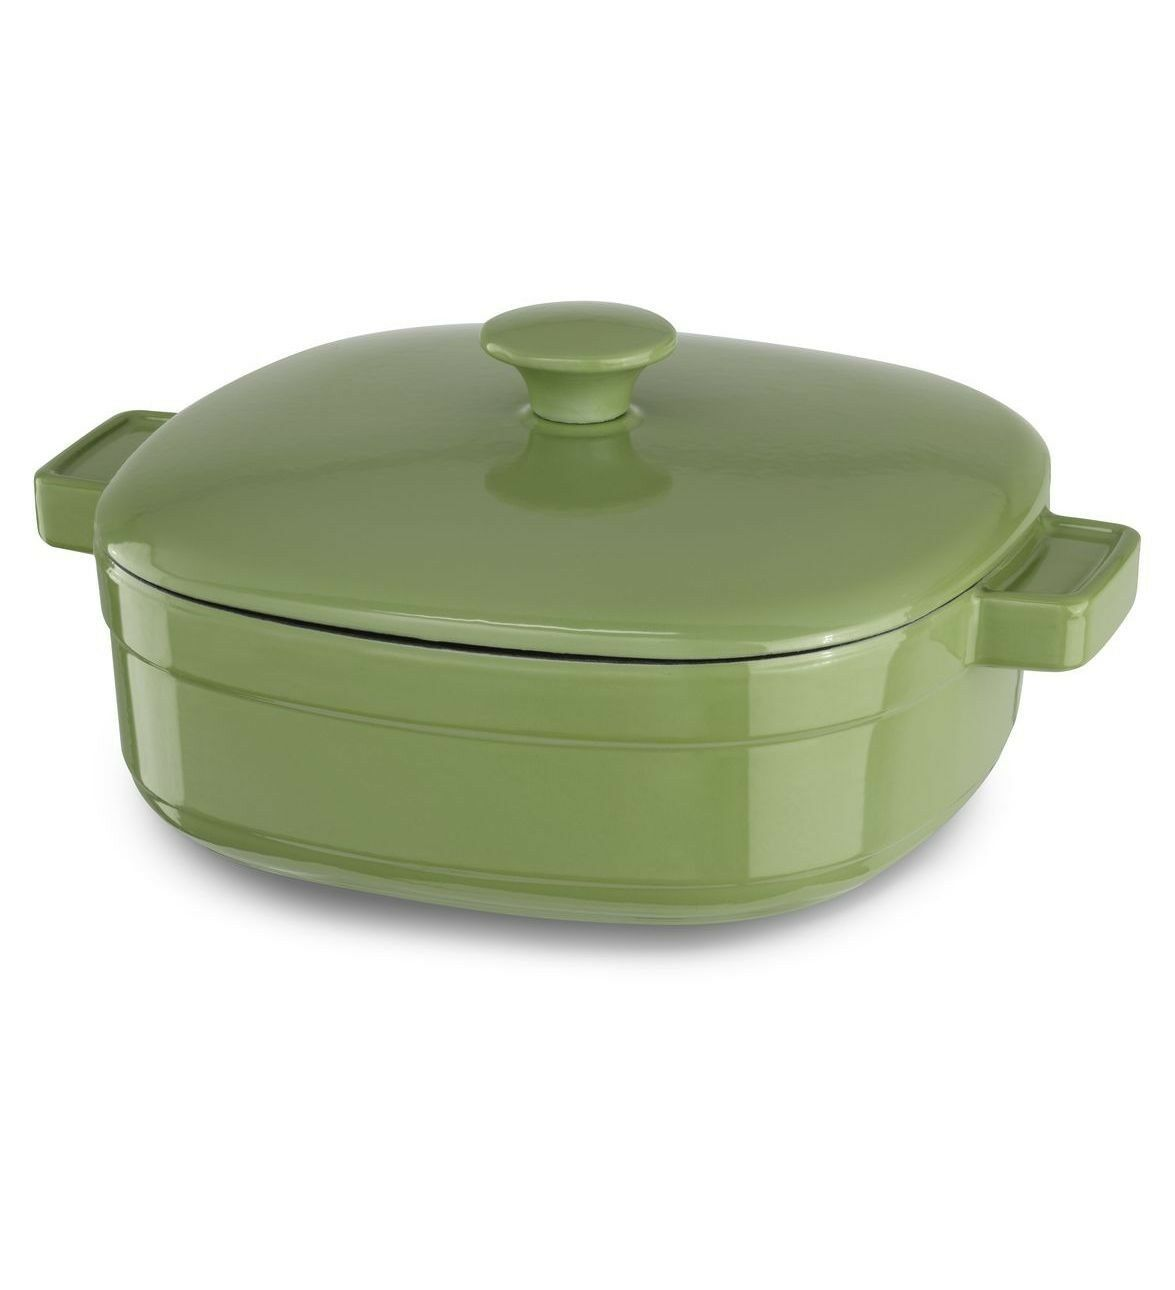 Kitchenaid Cast Iron Streamline Cookware KCLI40CRKI Kiwi Green 4-Quart Casserole at Sears.com